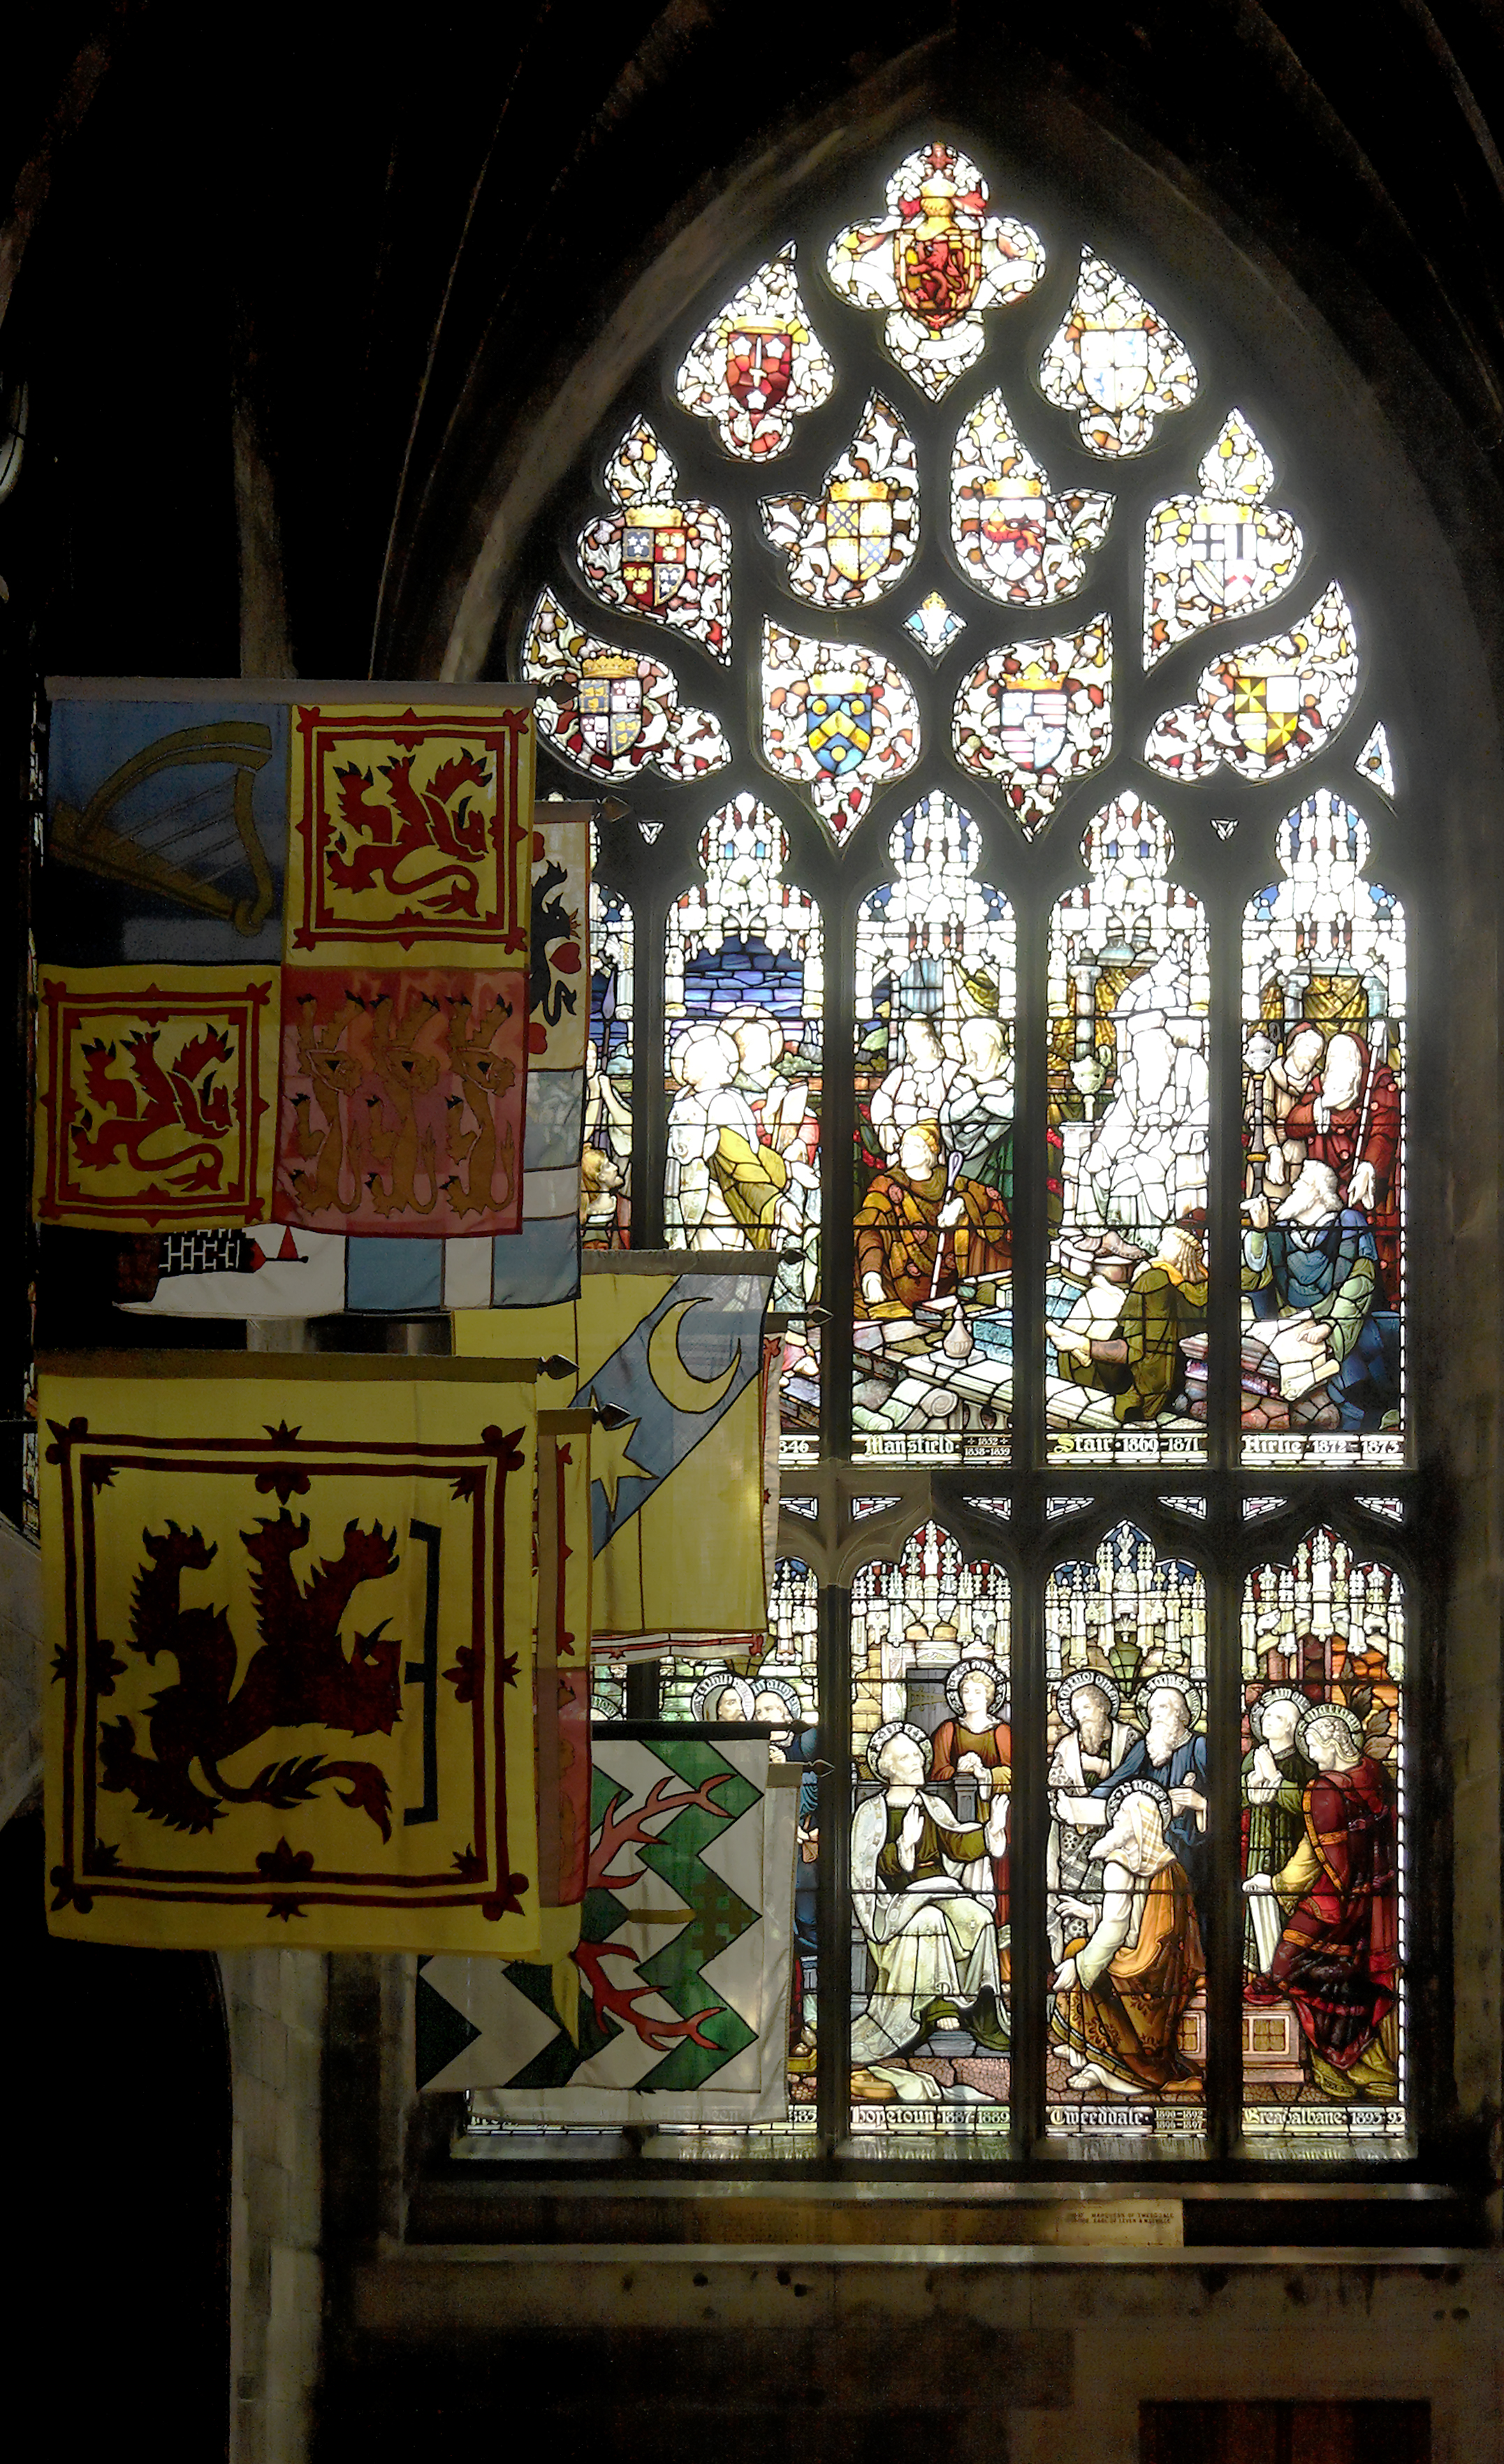 Cathedral stained glass windows 1.jpg